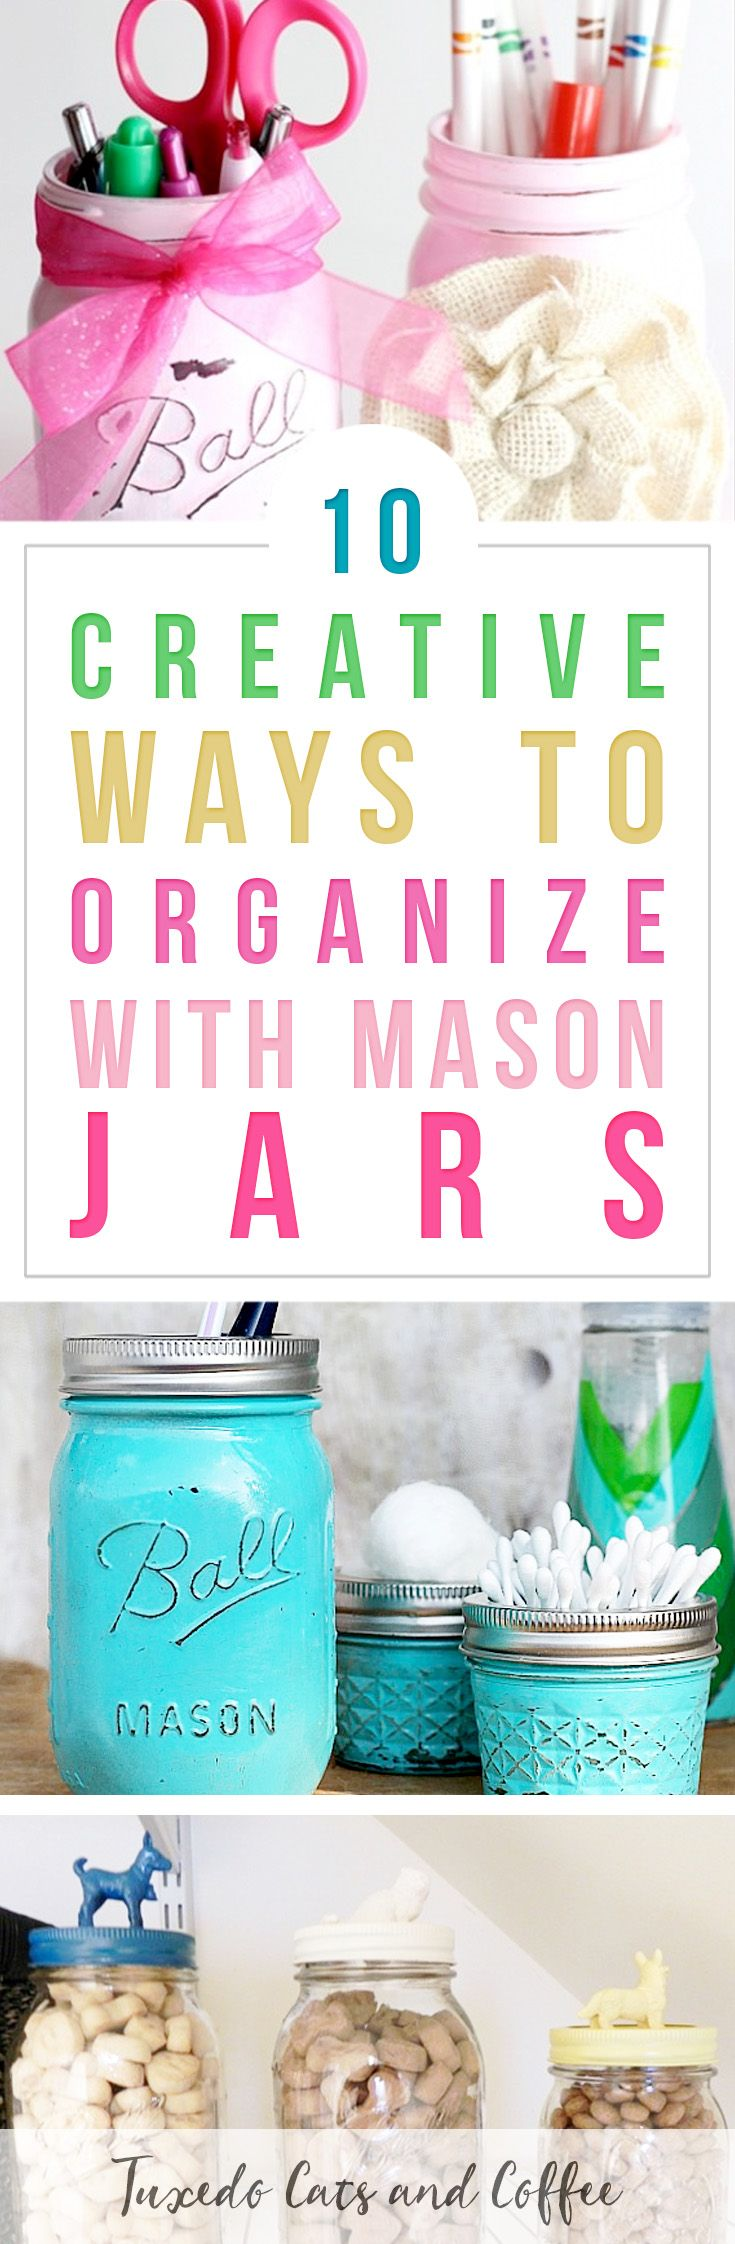 Looking for a frugal and cute way to organize your home with items you probably already have? Here are 10 clever ways to organize with mason jars around your home. #organizingideas #masonjars #masonjarorganizing #masonjarhack